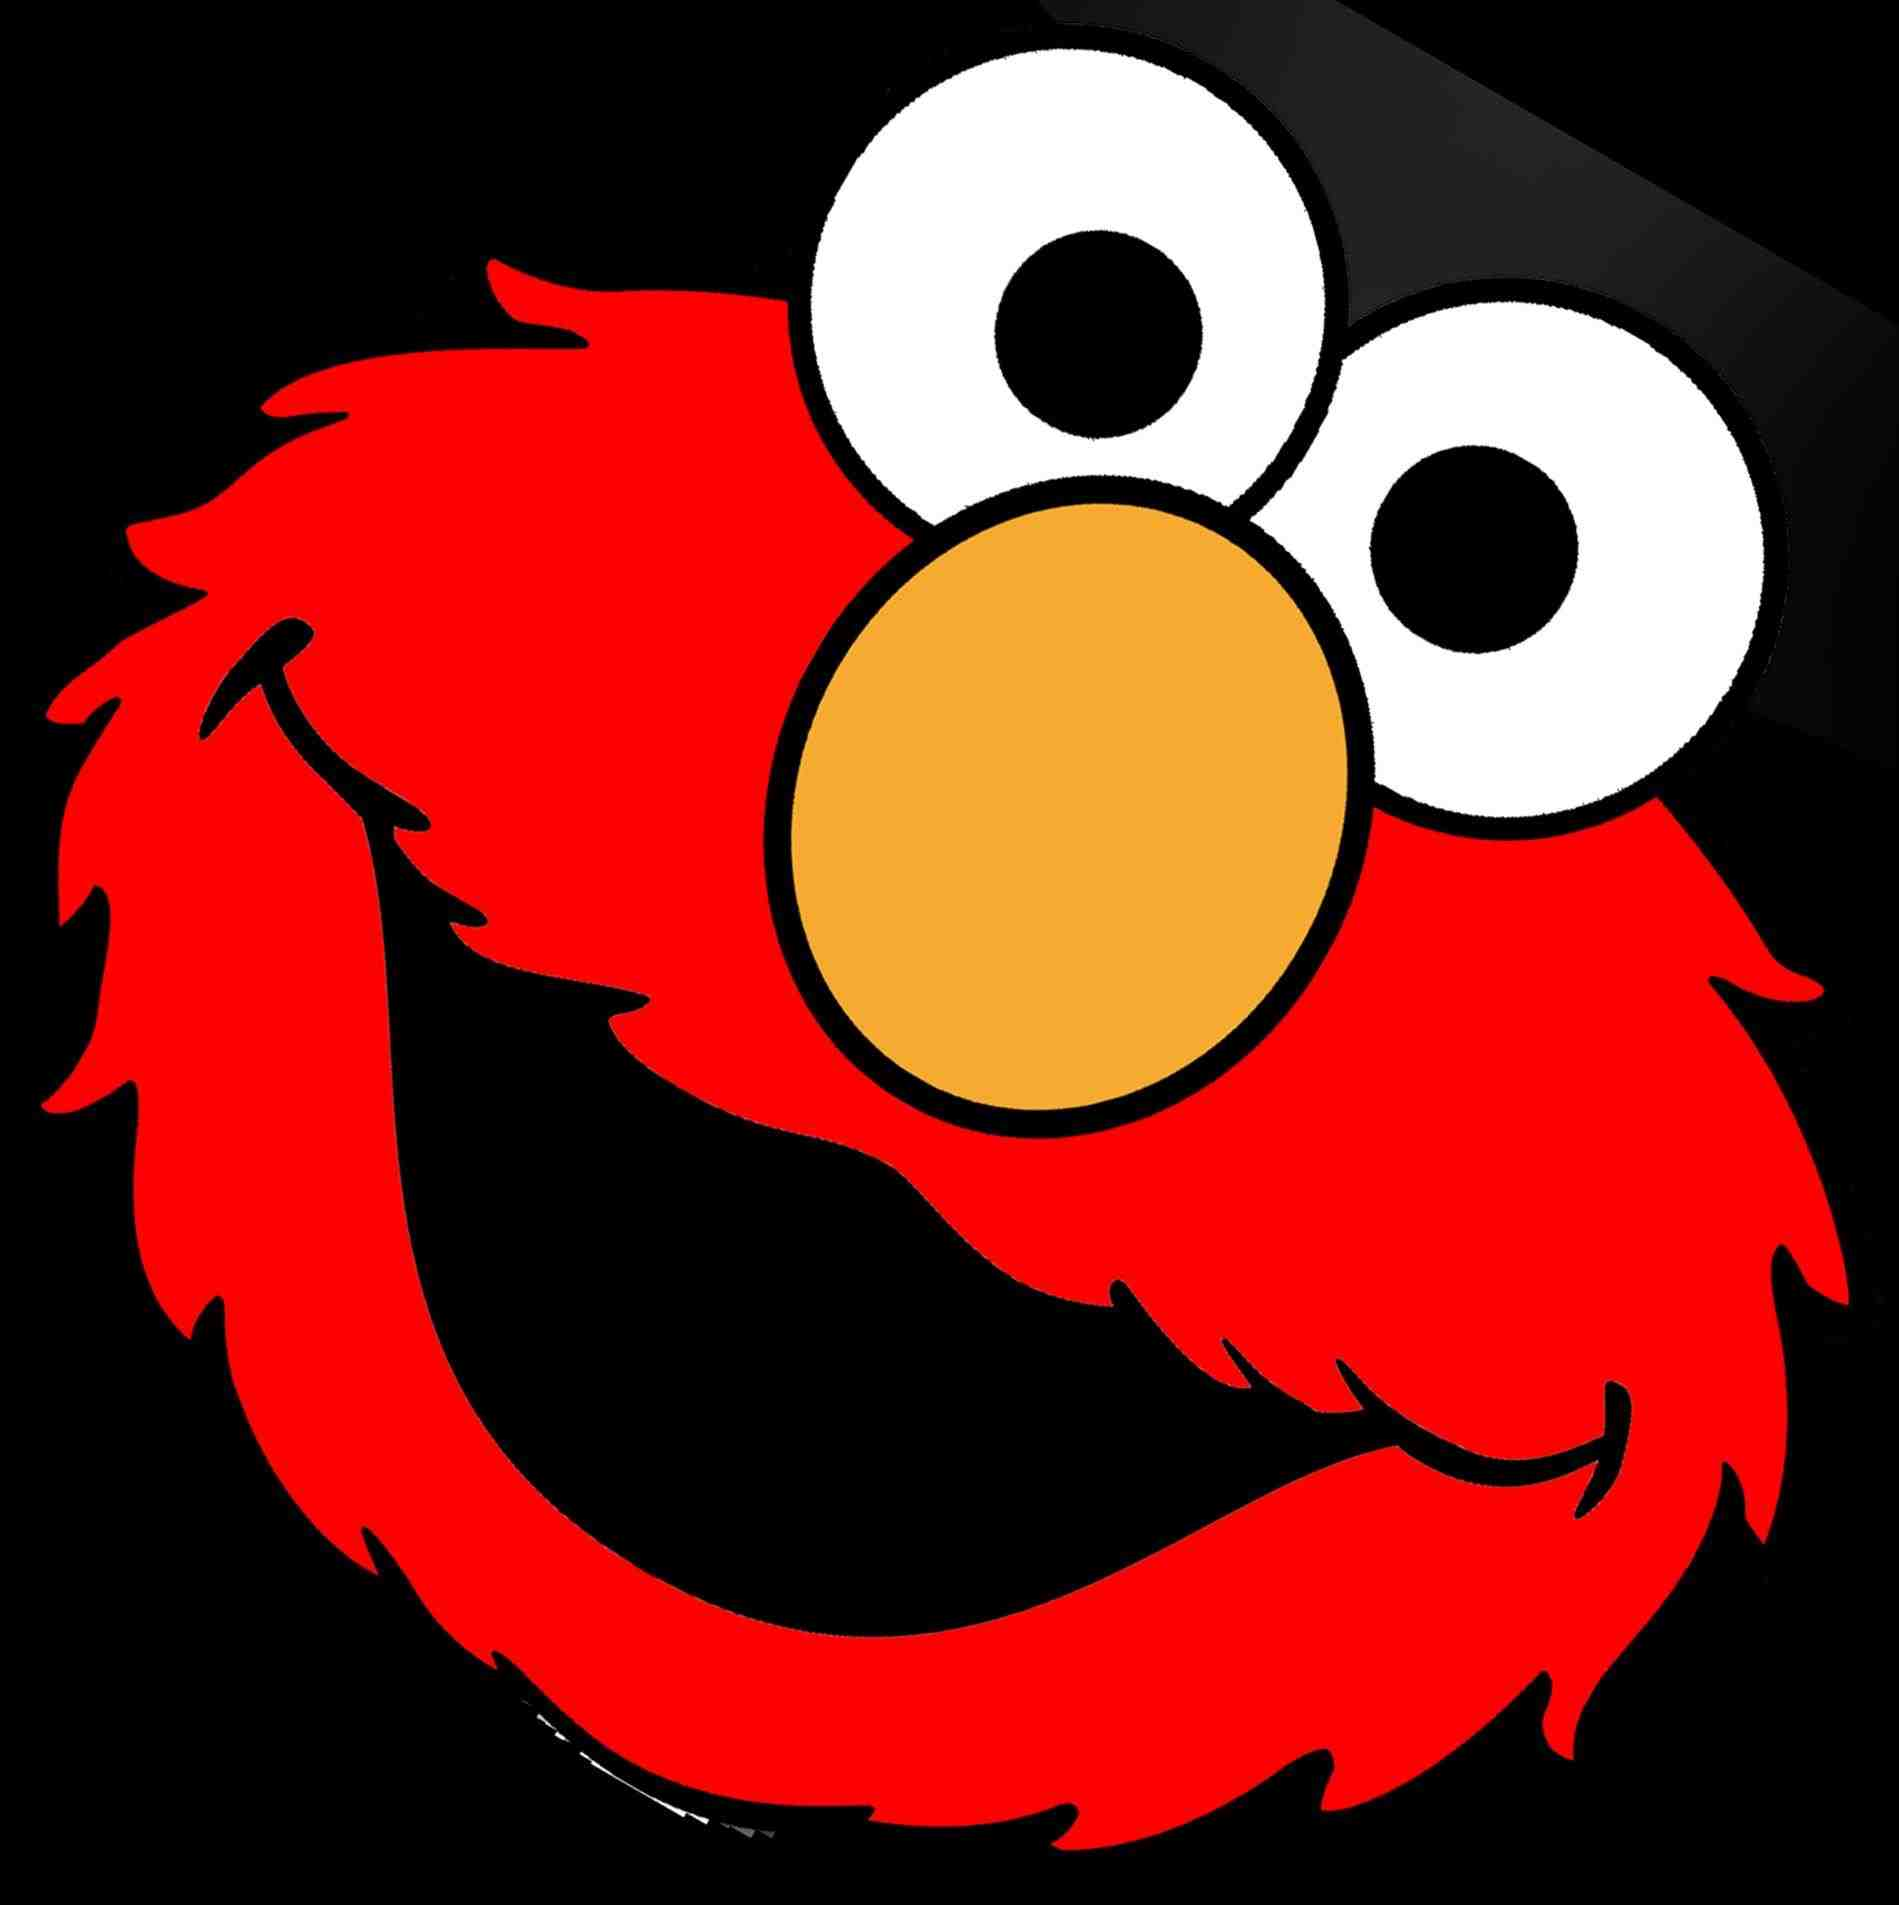 Elmo Face Template Gallery template design free download